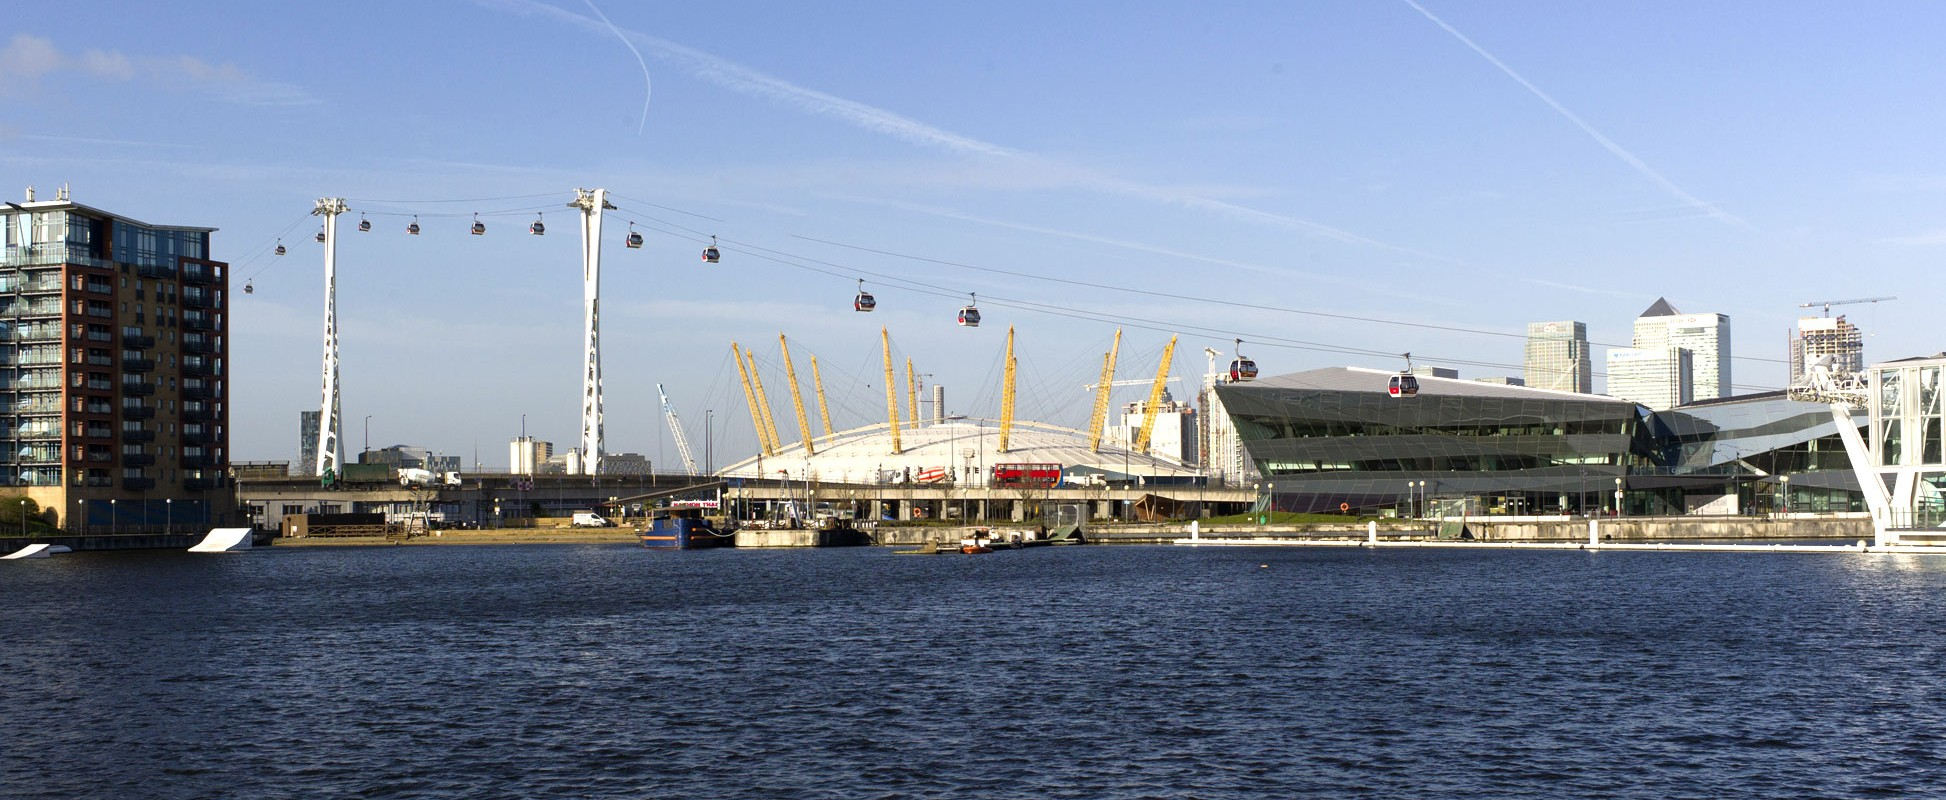 hotels near o2 arena london